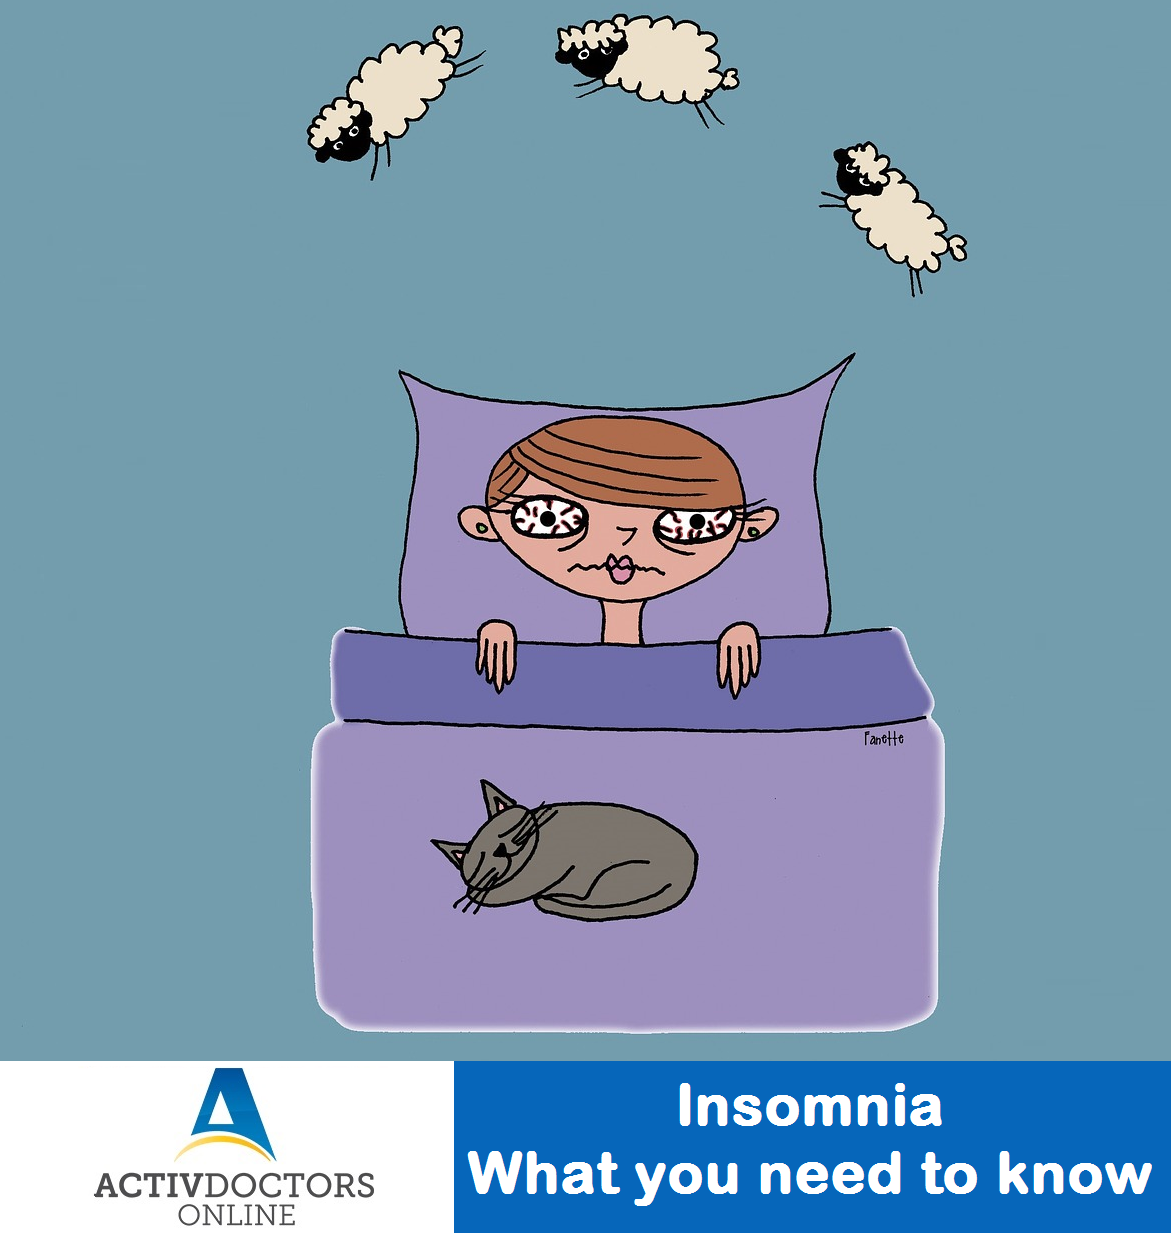 Insomnia – What you need to know